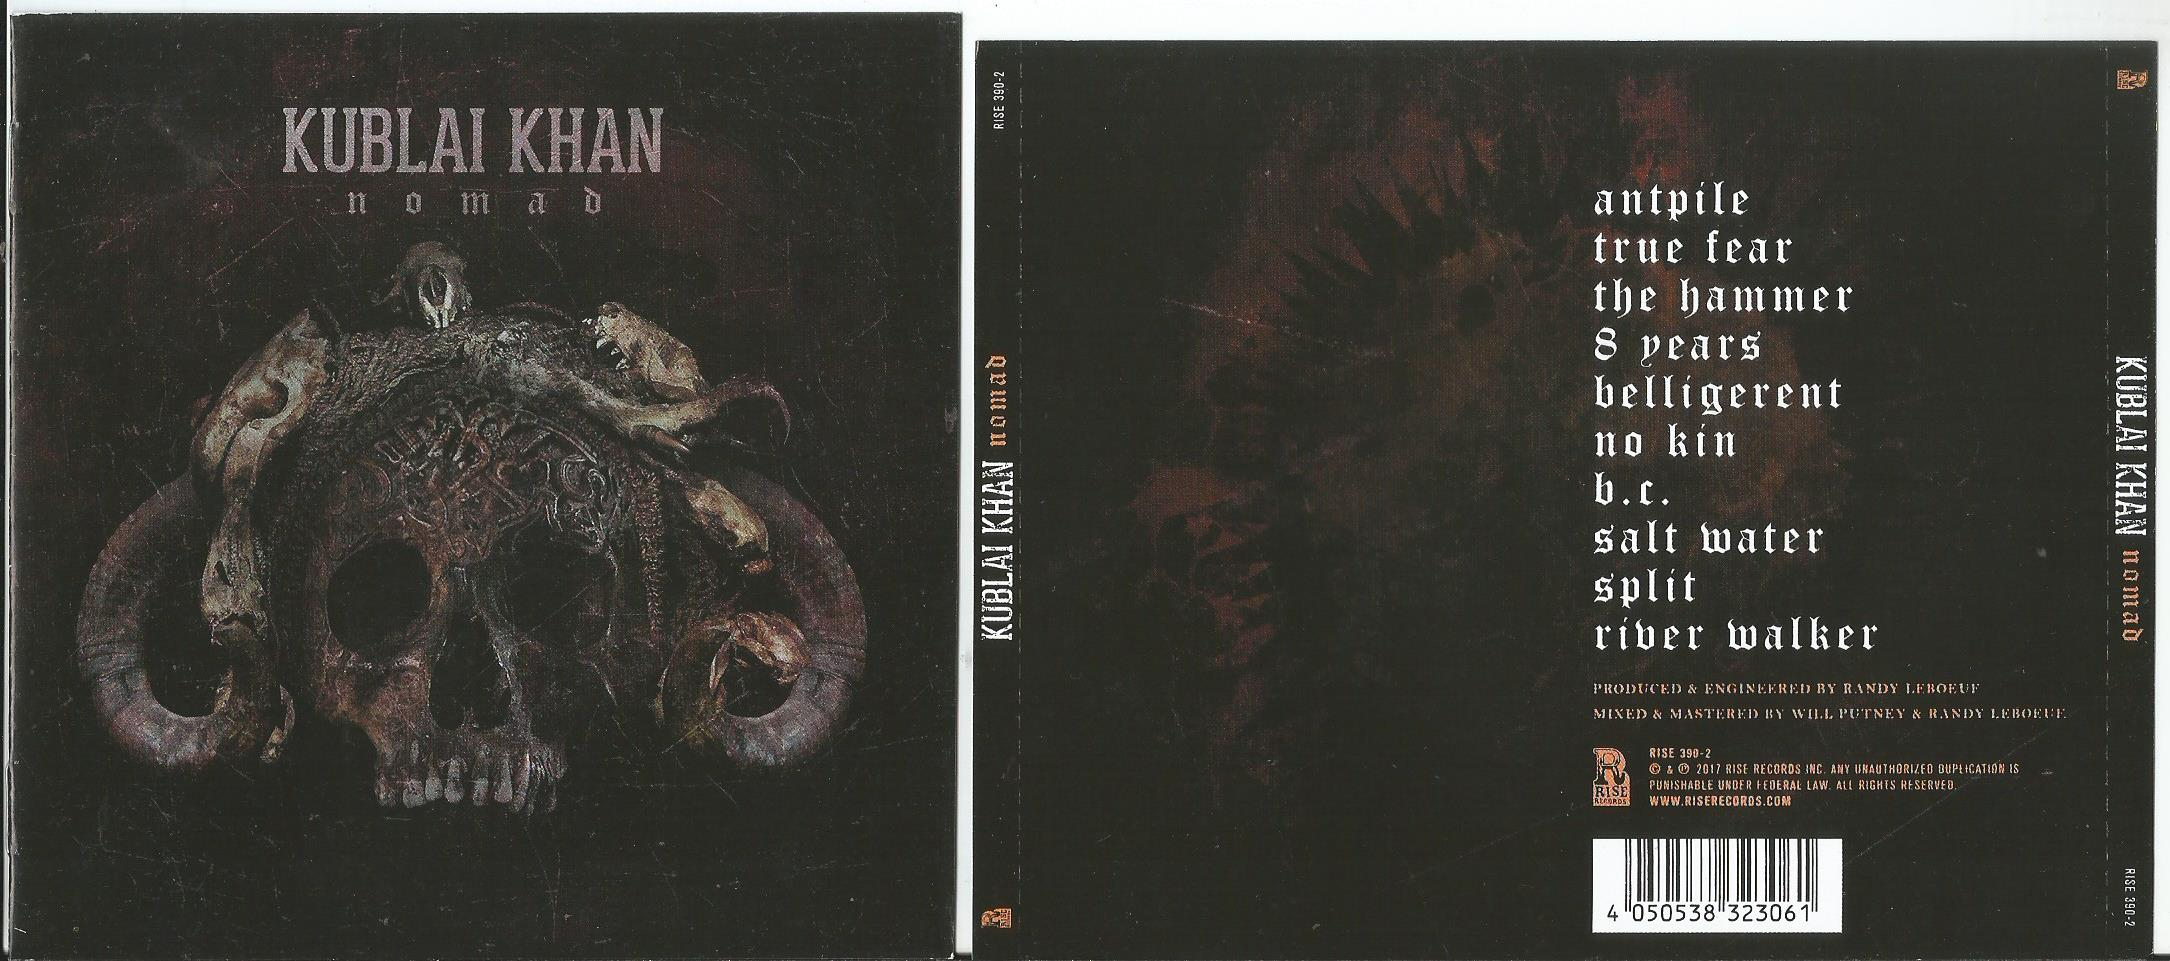 KUBLAI KHAN Nomad (jewel case edition, 8page booklet with lyrics)